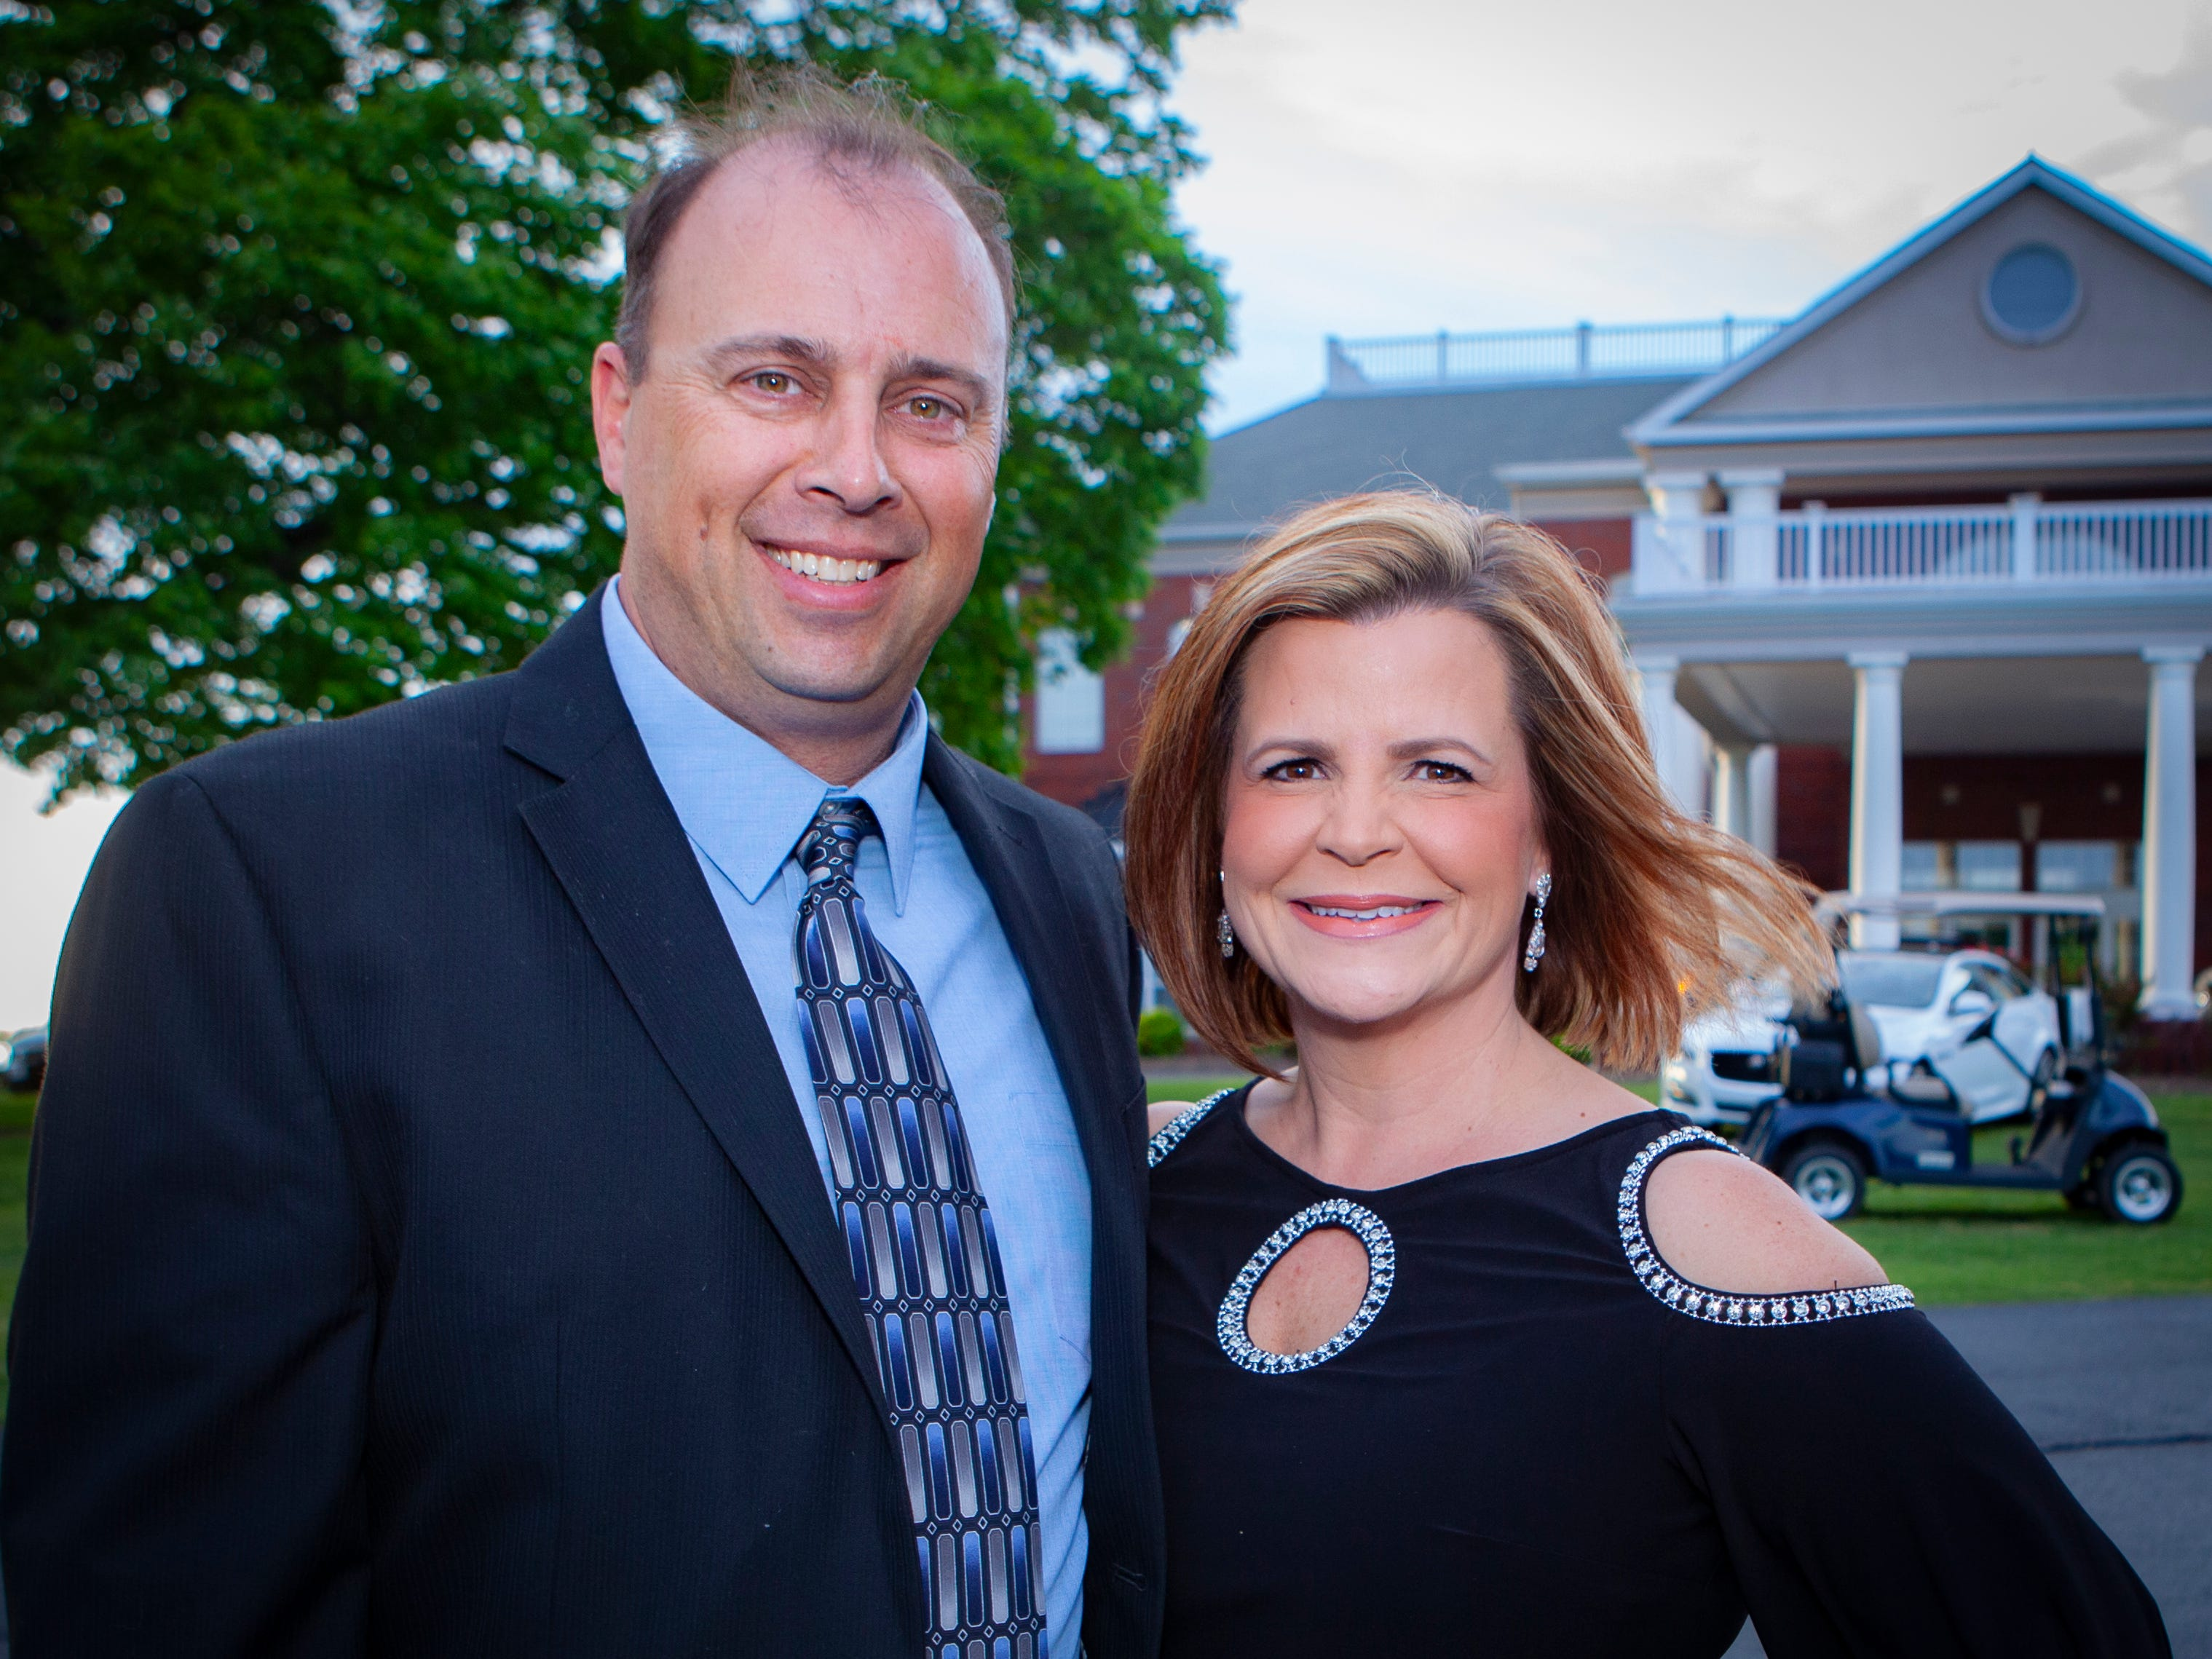 Charles andMarla Hord at the Charity Circle of Murfreesboro's 52nd Annual Duck Ball, held Saturday, April 27, 2019.